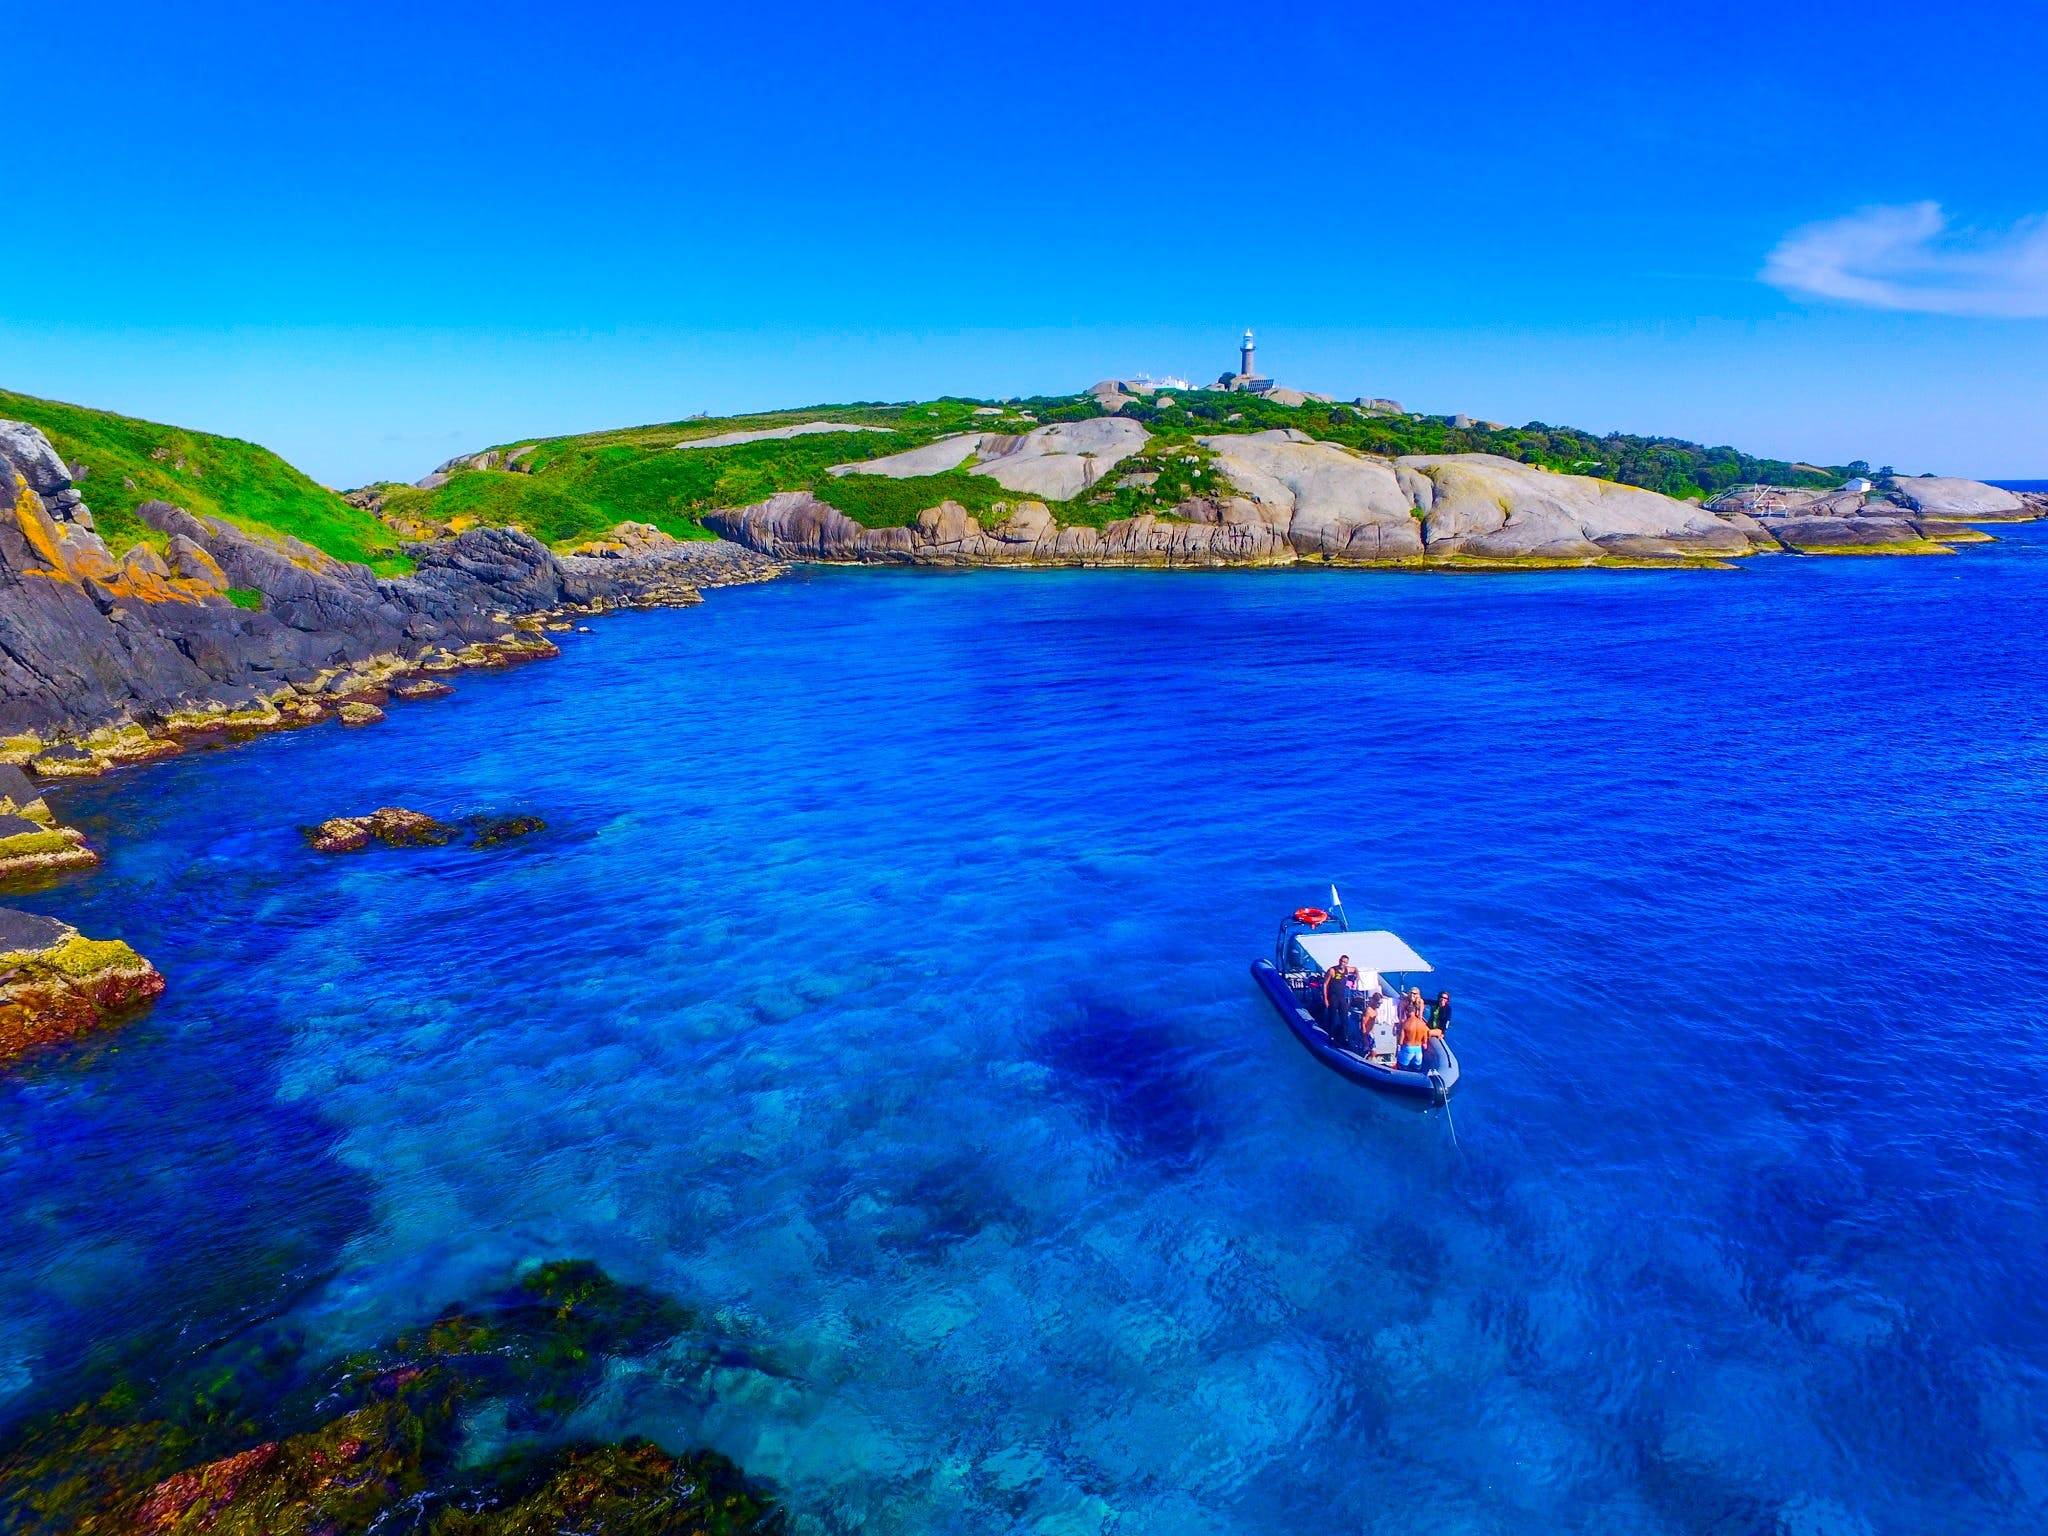 Snorkelling Montague Island - Accommodation Cairns